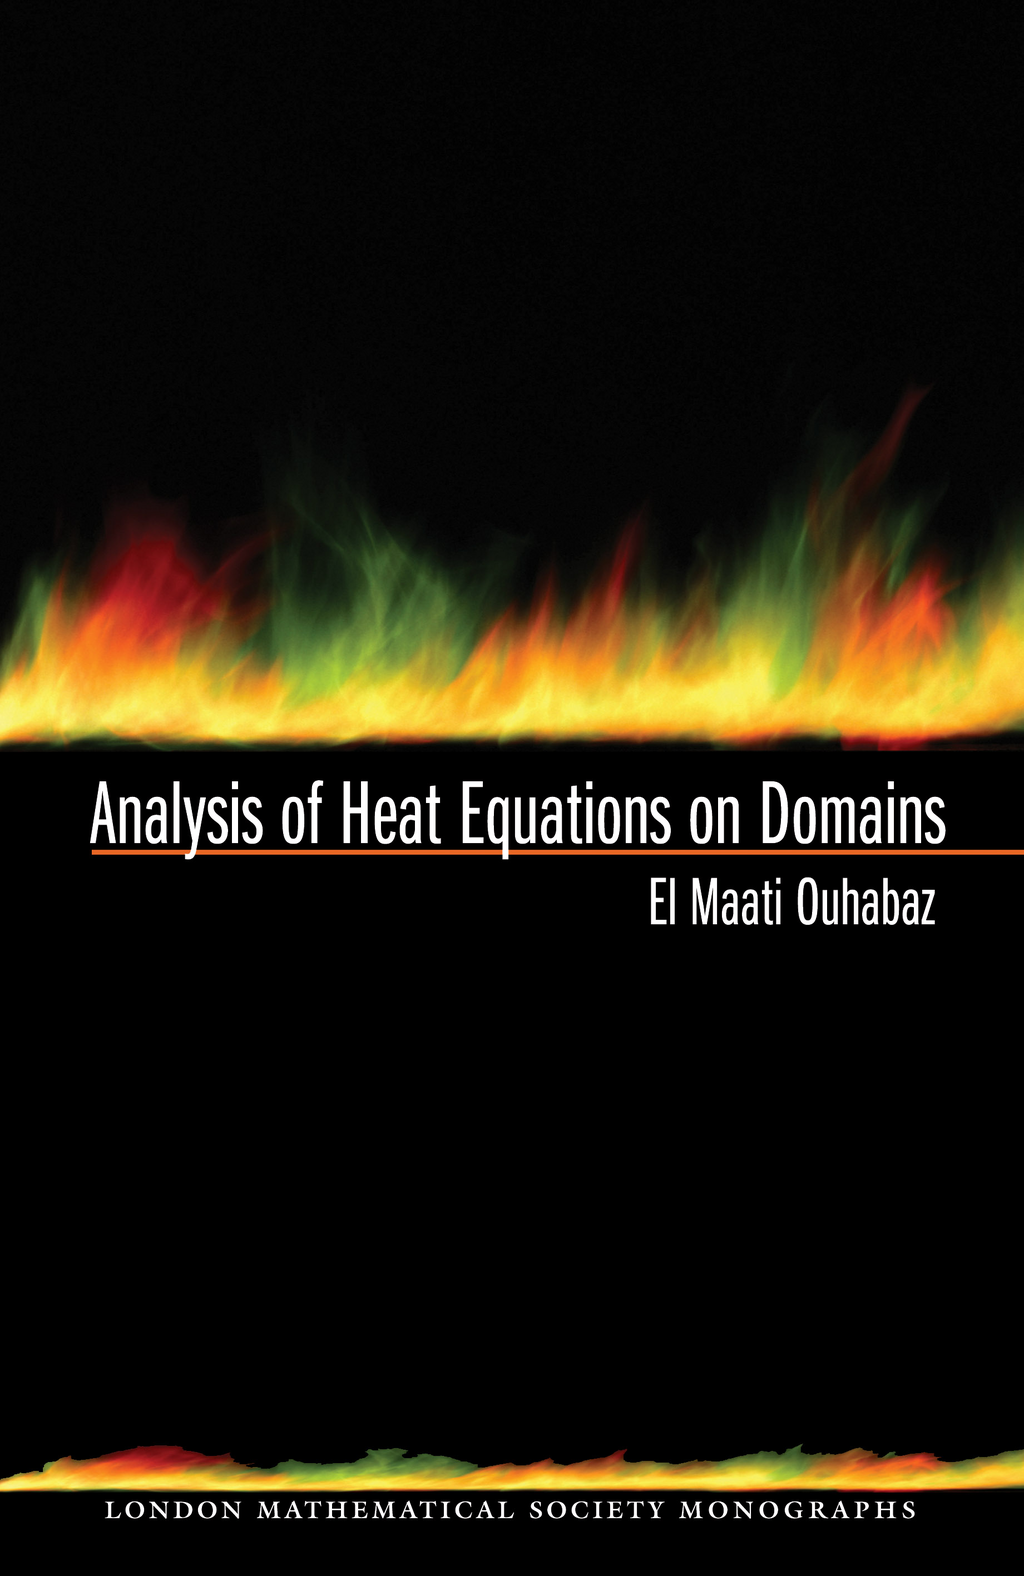 Analysis of Heat Equations on Domains. (LMS-31) By: El-Maati Ouhabaz